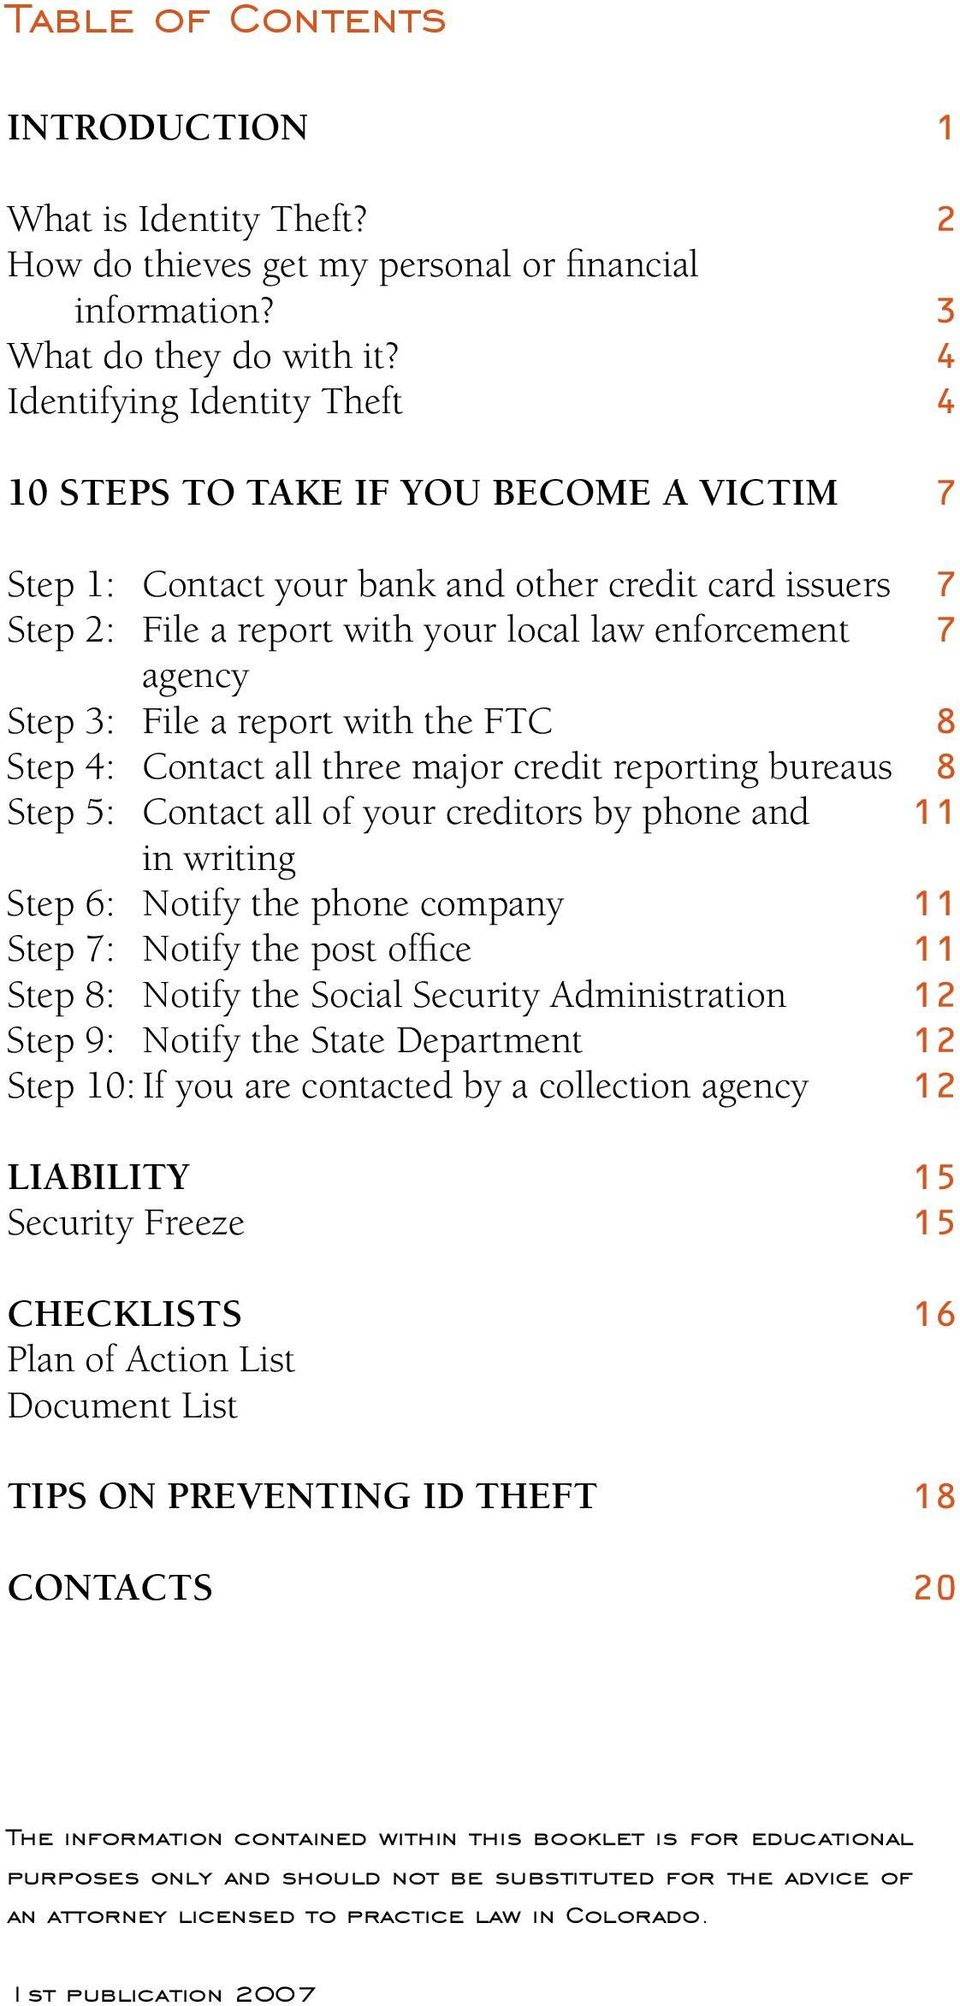 3: File a report with the FTC 8 Step 4: Contact all three major credit reporting bureaus 8 Step 5: Contact all of your creditors by phone and 11 in writing Step 6: Notify the phone company 11 Step 7: